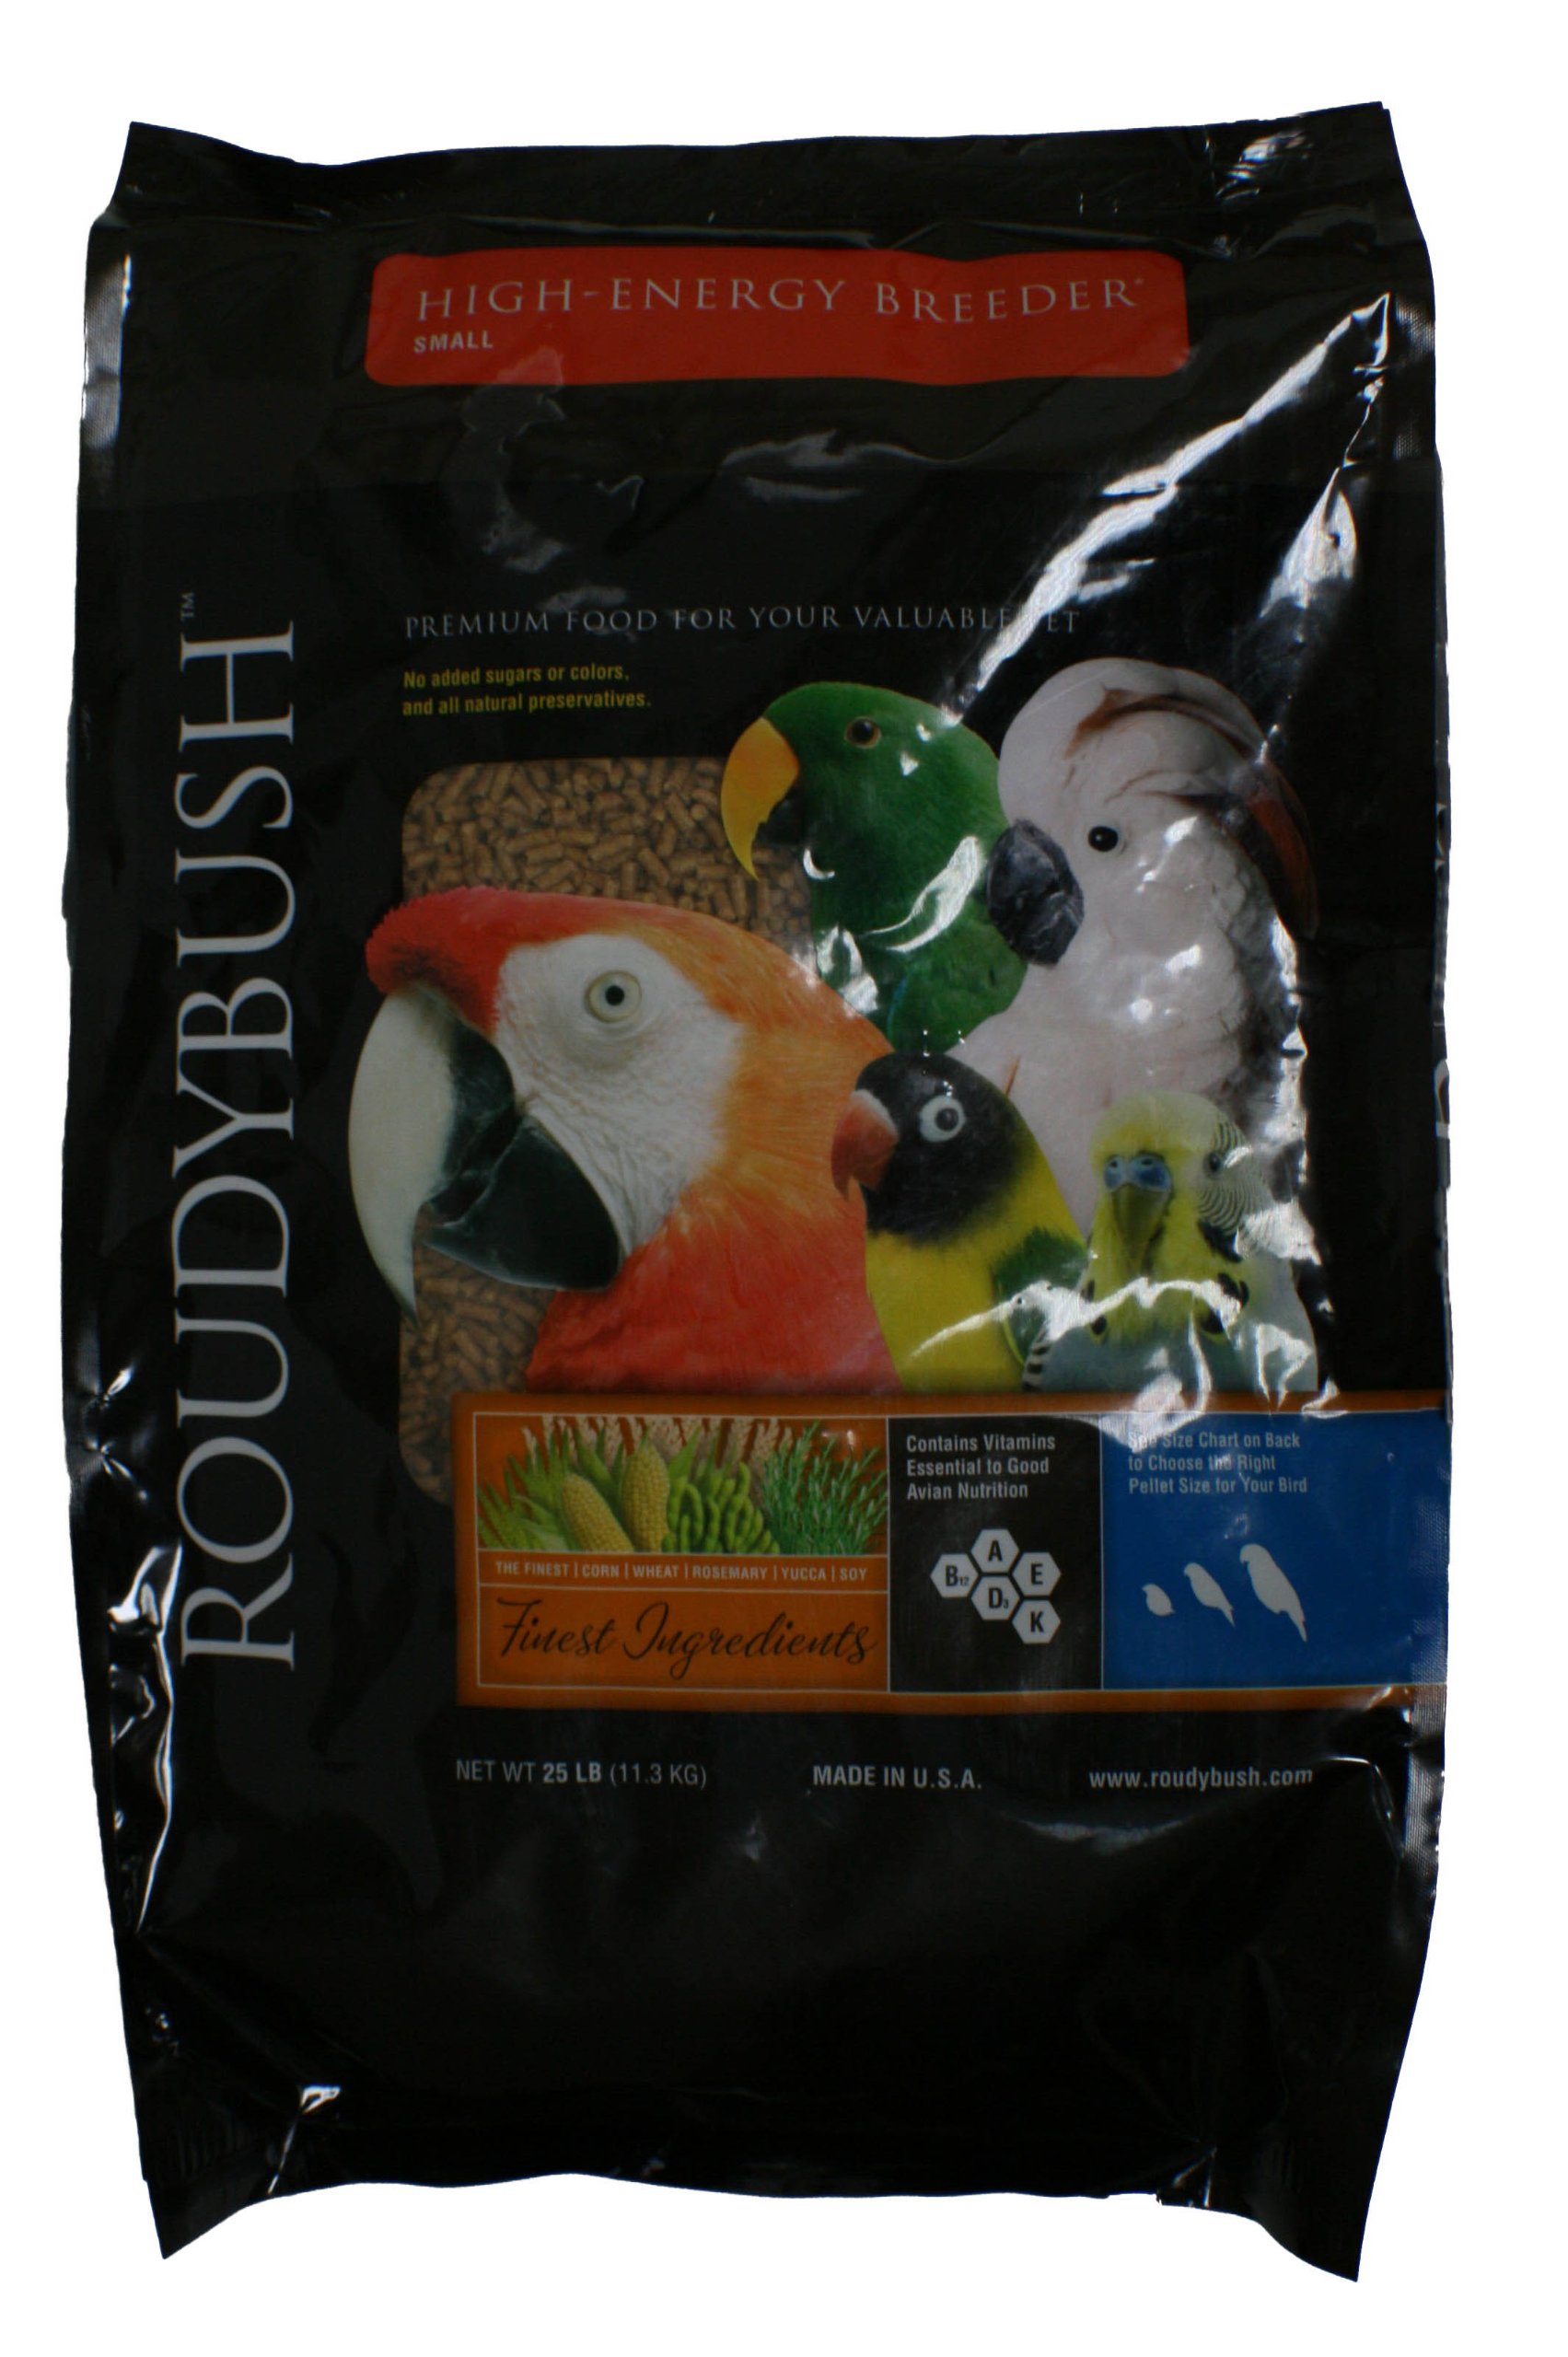 Roudybush High Energy Breeder Bird Food, Small, 25-Pound